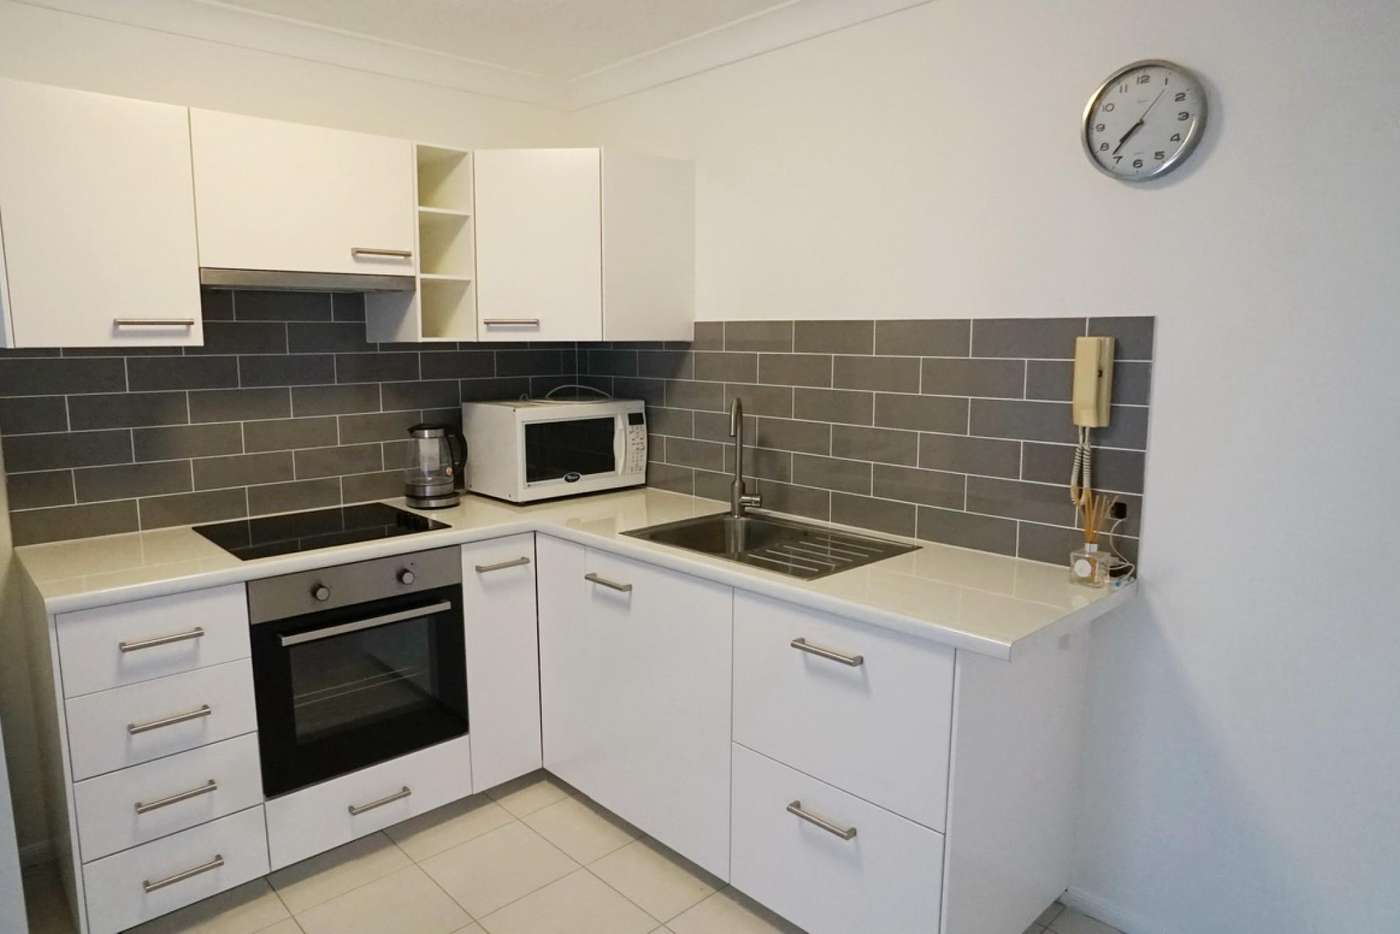 Main view of Homely apartment listing, 26/51 leopard street, Kangaroo Point QLD 4169